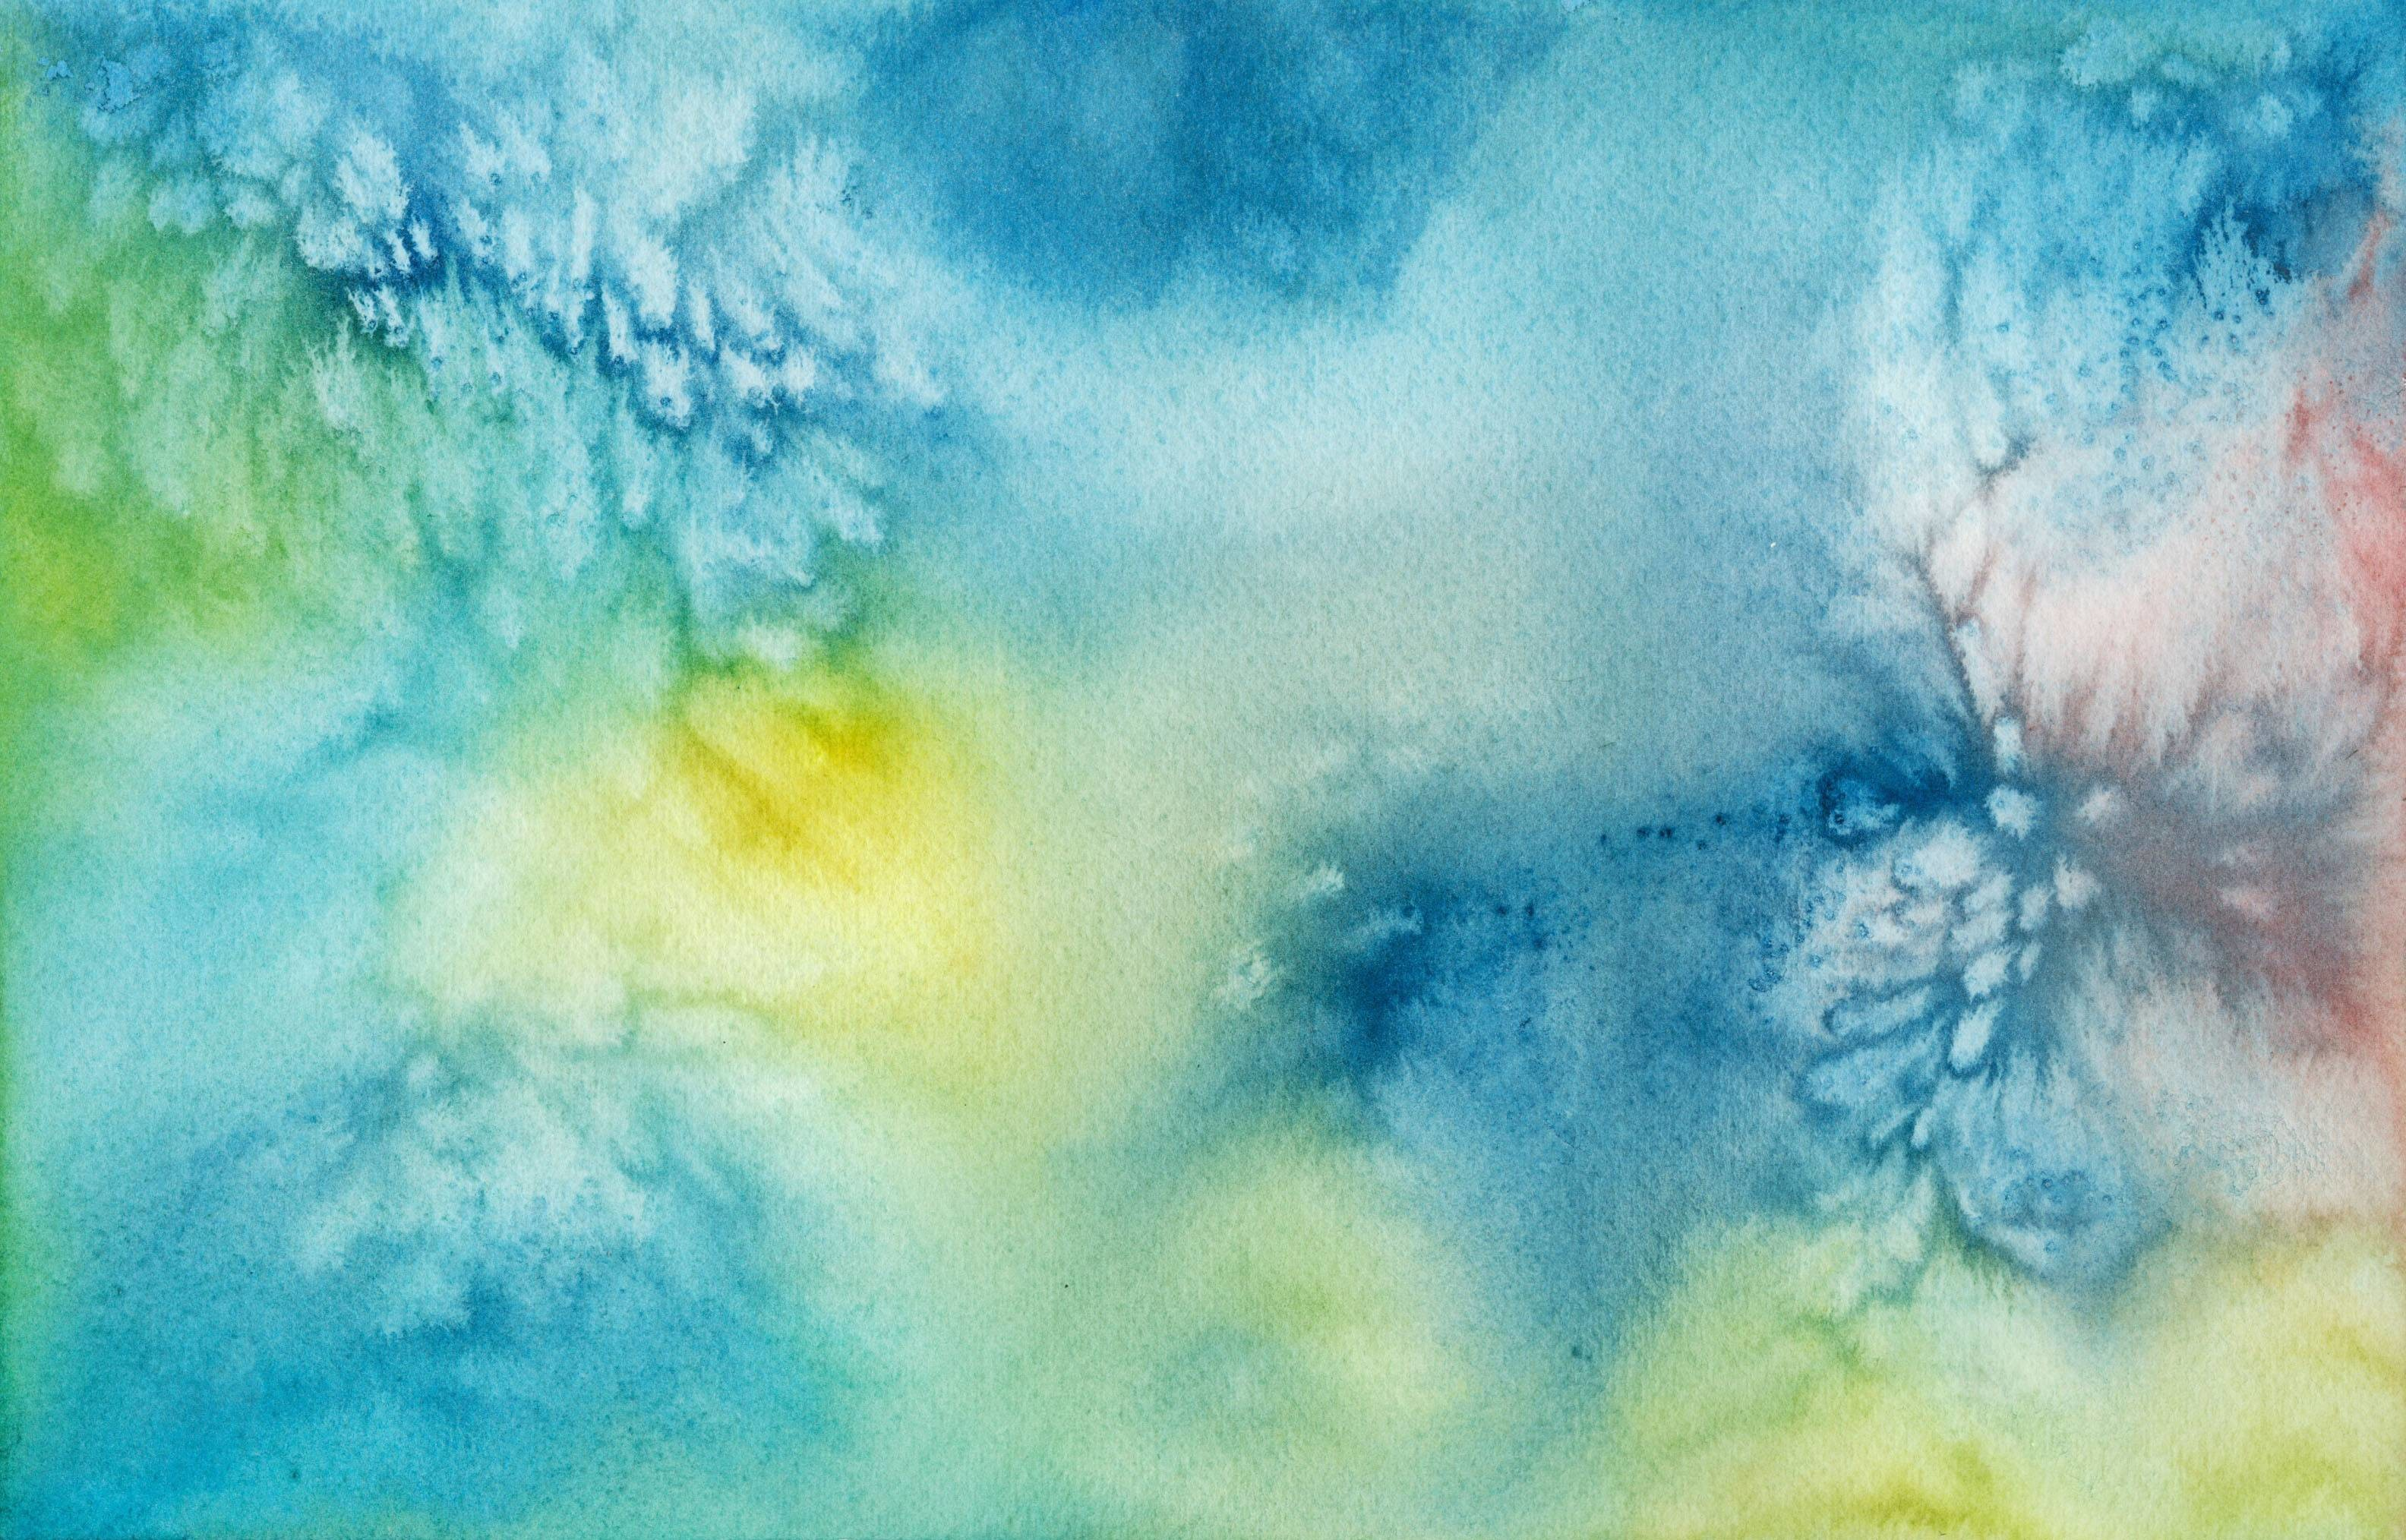 Watercolor Texture Stock 1 by ekoh-stock on DeviantArt